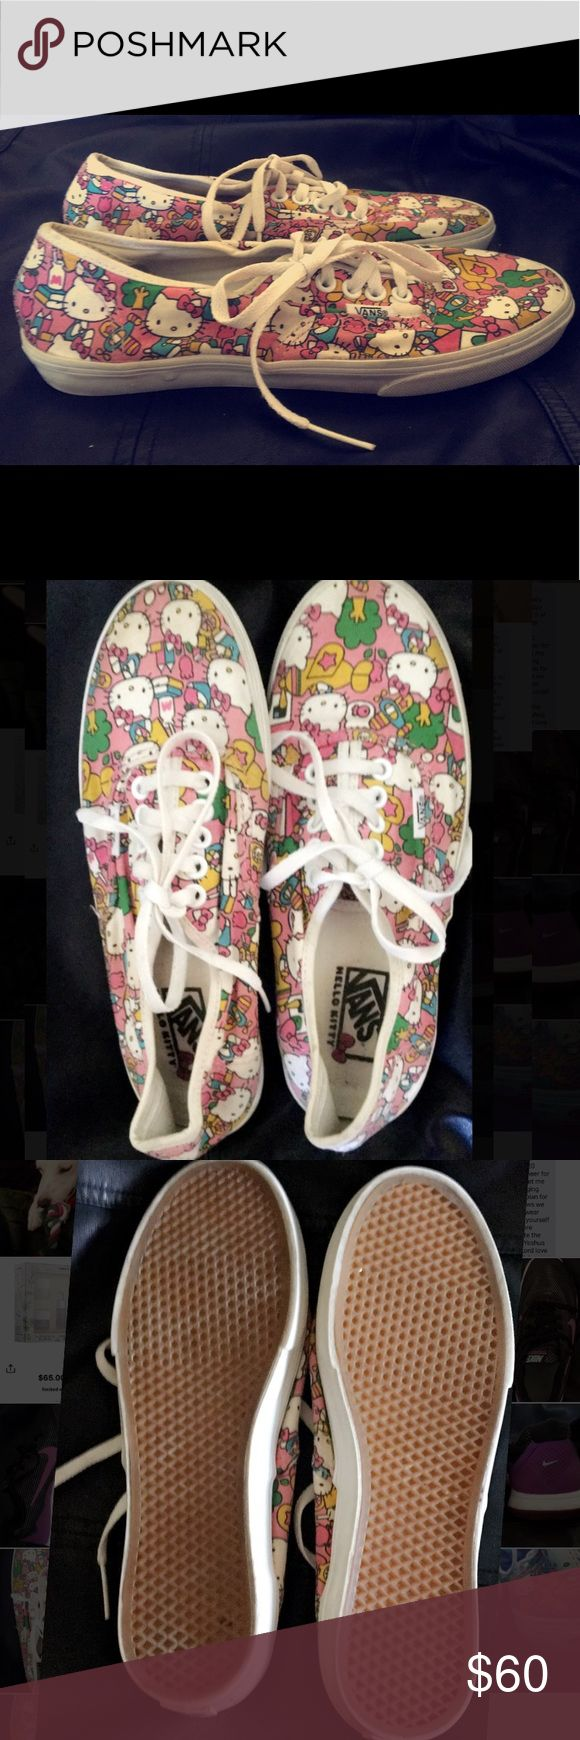 Limited Edition Hello Kitty Vans Limited Edition Hello Kitty Vans multicolor women 6.5 men 5 Vans Shoes Sneakers